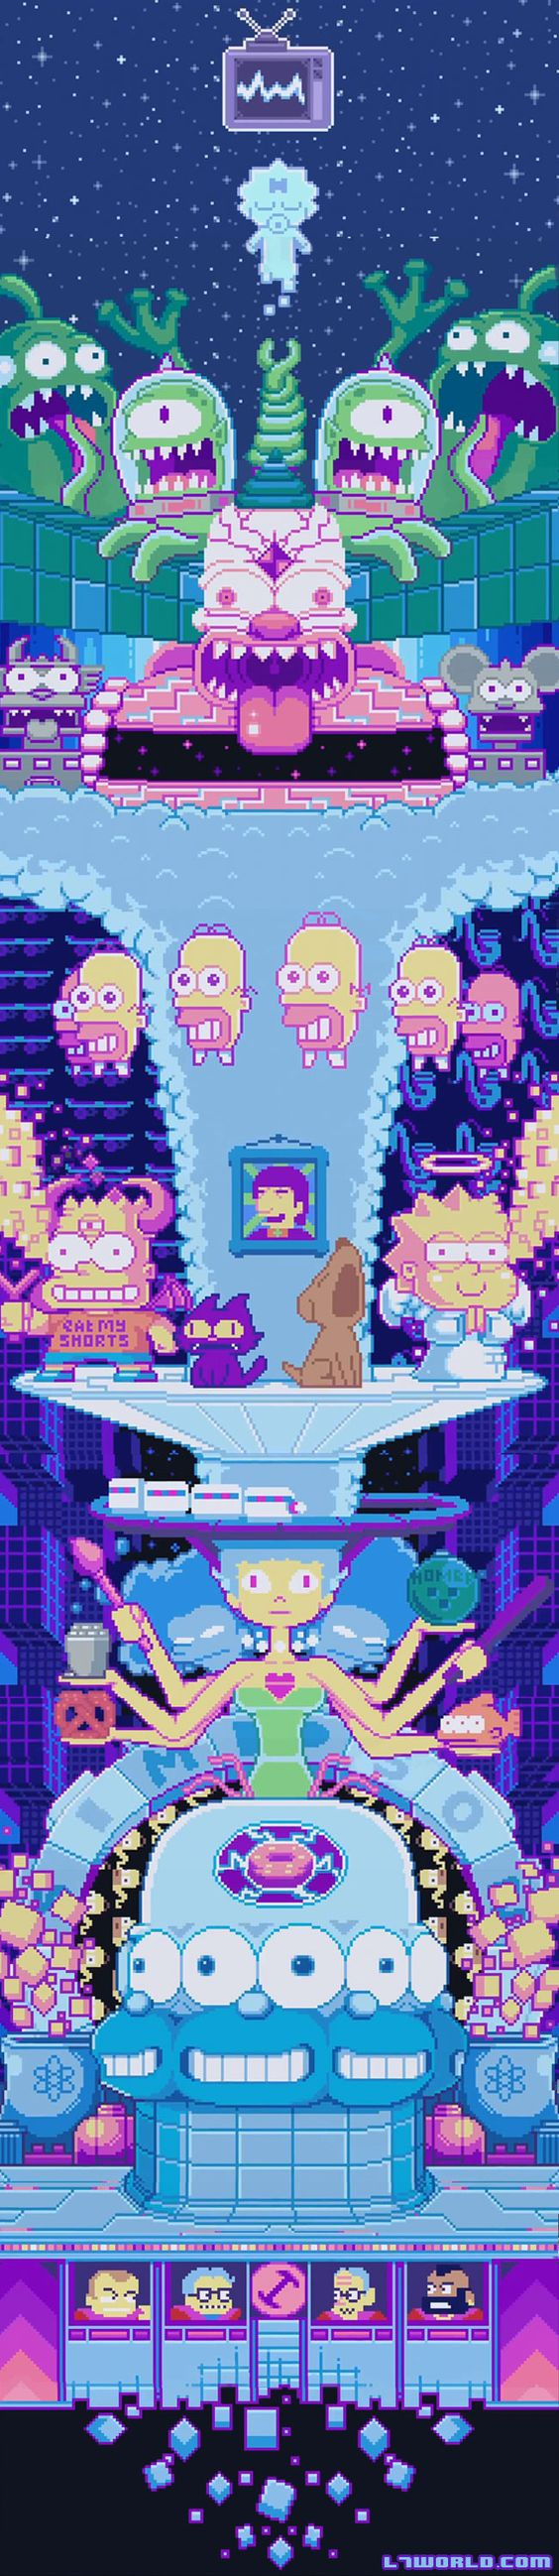 """The Simpsons have never been edgier than in this week's episode """"My Fare Lady."""" The opening sequence has been reimagined in pixel form complete with Lo-fi video game music.The family gets digitized into a video game world resembling art by Robertson titled """"We Made It."""" The camera pans up a towering homage to classic episodes that includes the Mr. Sparkle mascot, the Stonecutters, and the infamous three-eyed fish. http://l7world.com/2015/02/simpsons-couch-gag-features-pixel-art-by-fans.html"""